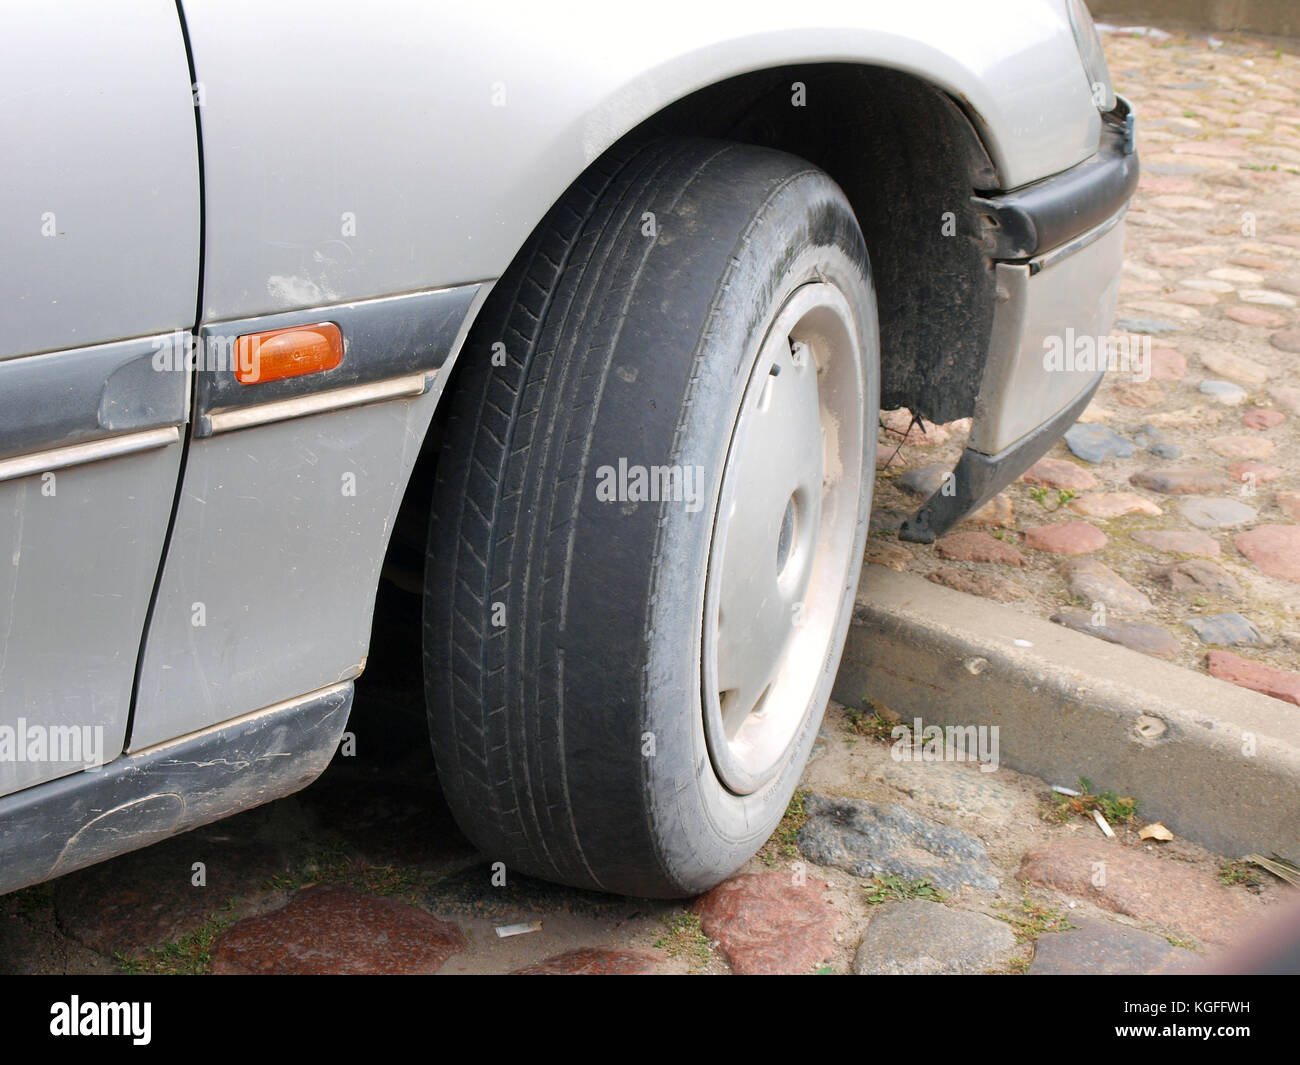 LIEPAJA, LATVIA - AUGUST 25, 2015: Car with worn tire tread on front wheel is parked on the parking place. - Stock Image